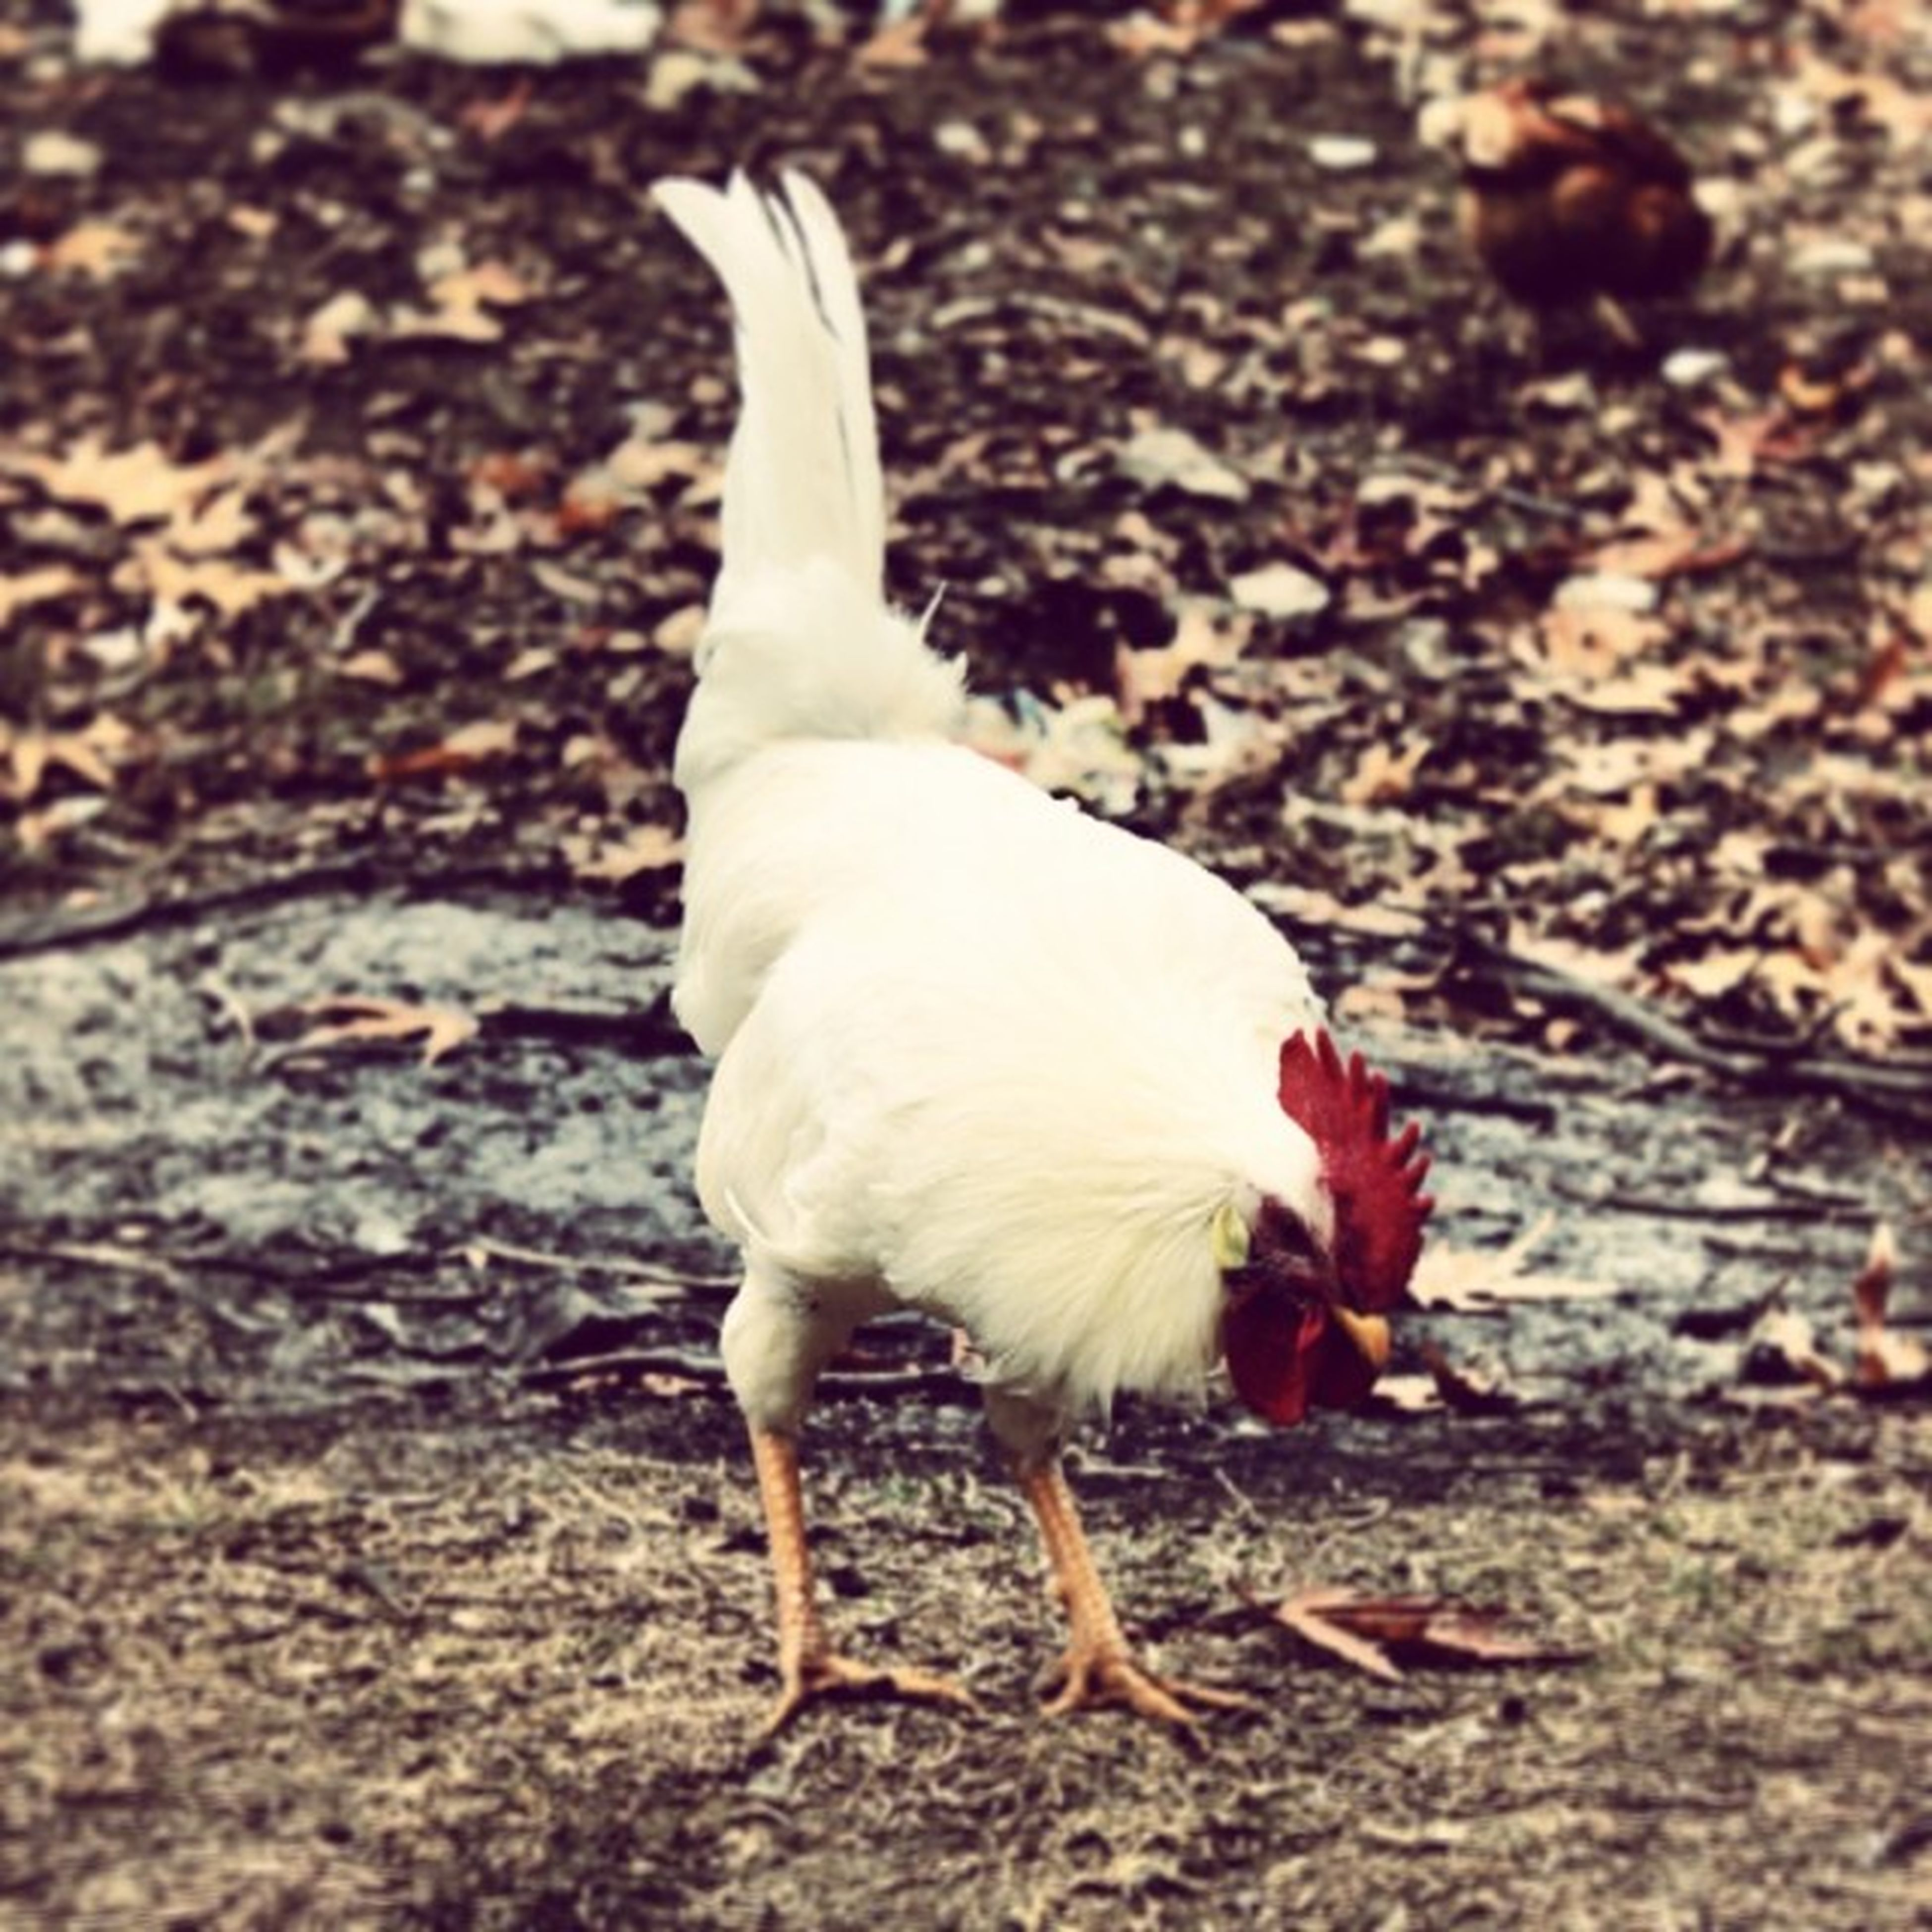 animal themes, one animal, bird, white color, domestic animals, full length, field, focus on foreground, nature, animals in the wild, wildlife, high angle view, close-up, outdoors, day, feather, no people, dog, standing, side view